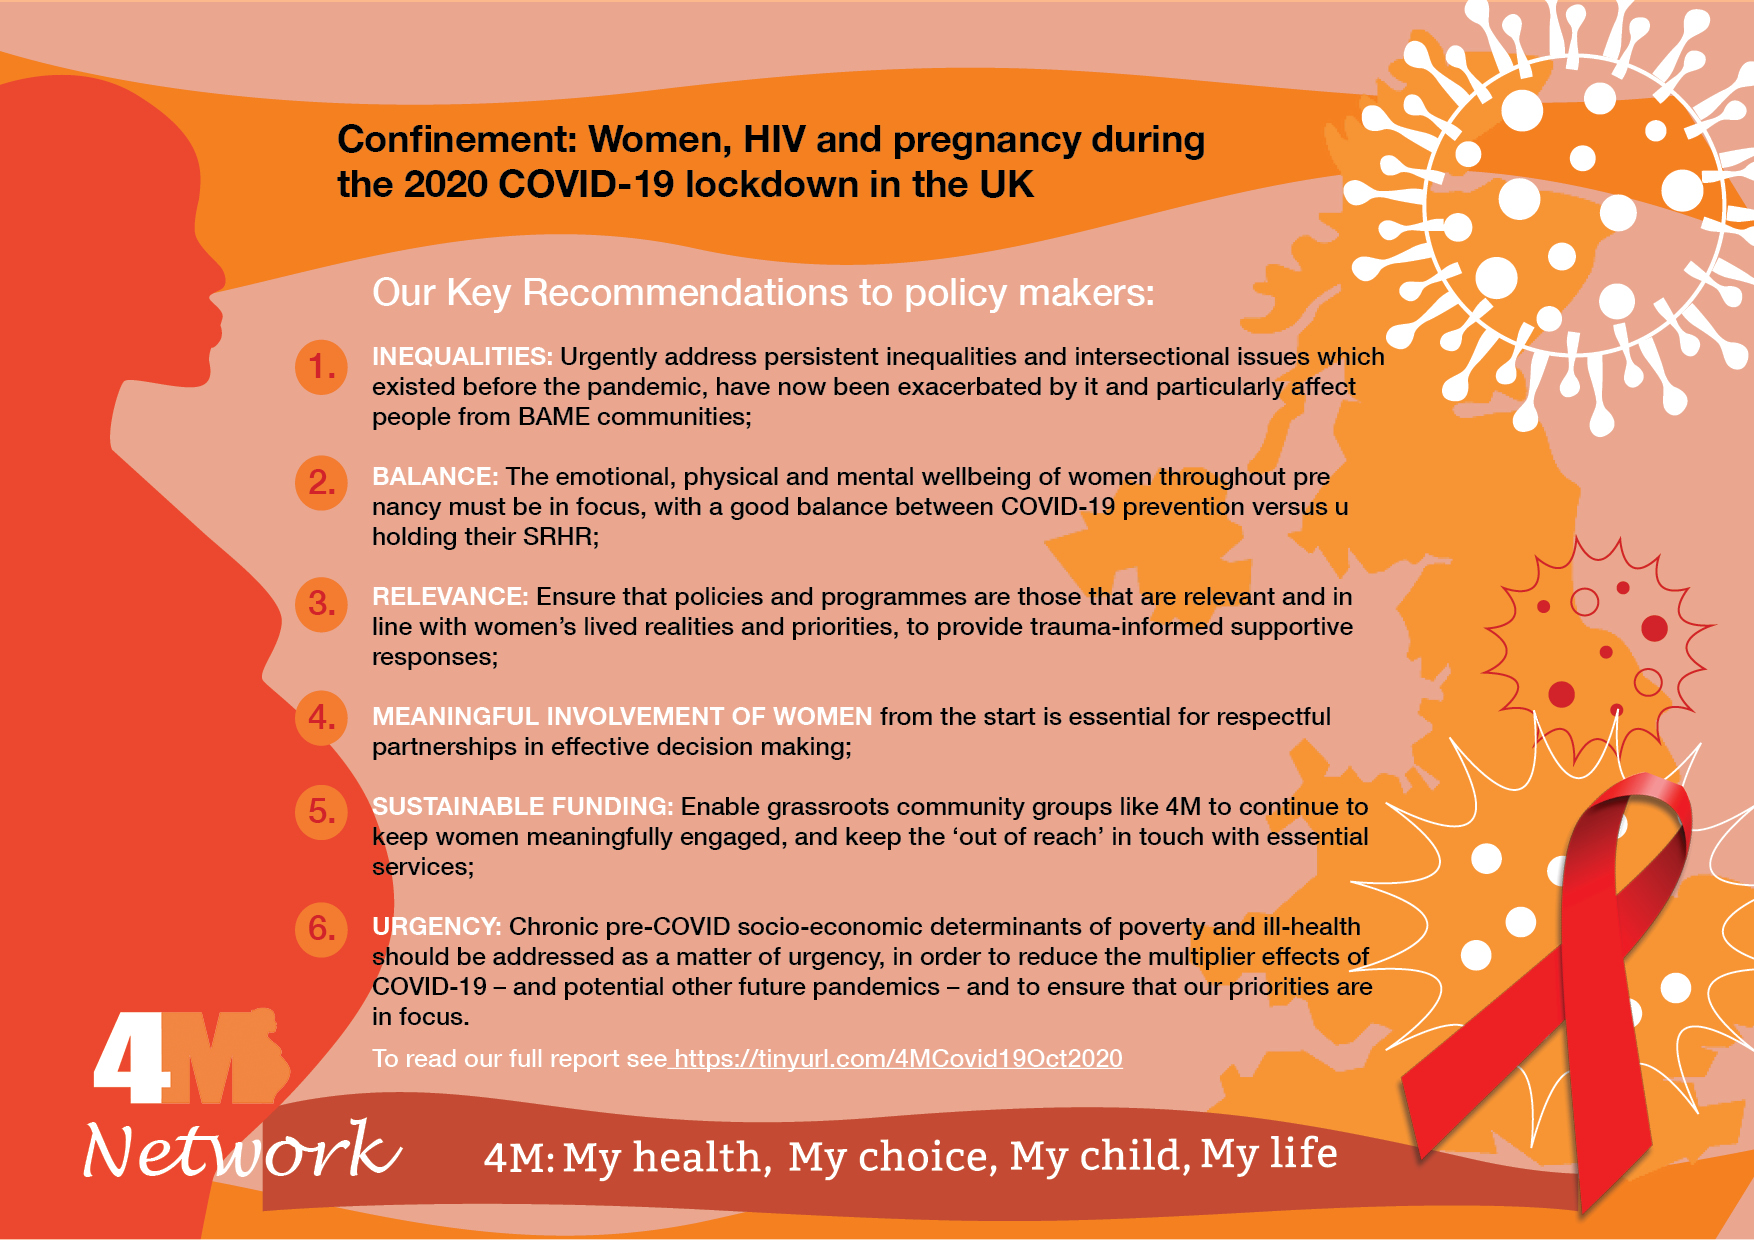 CONFINEMENT – Report on COVID-19 lockdown effects in the UK